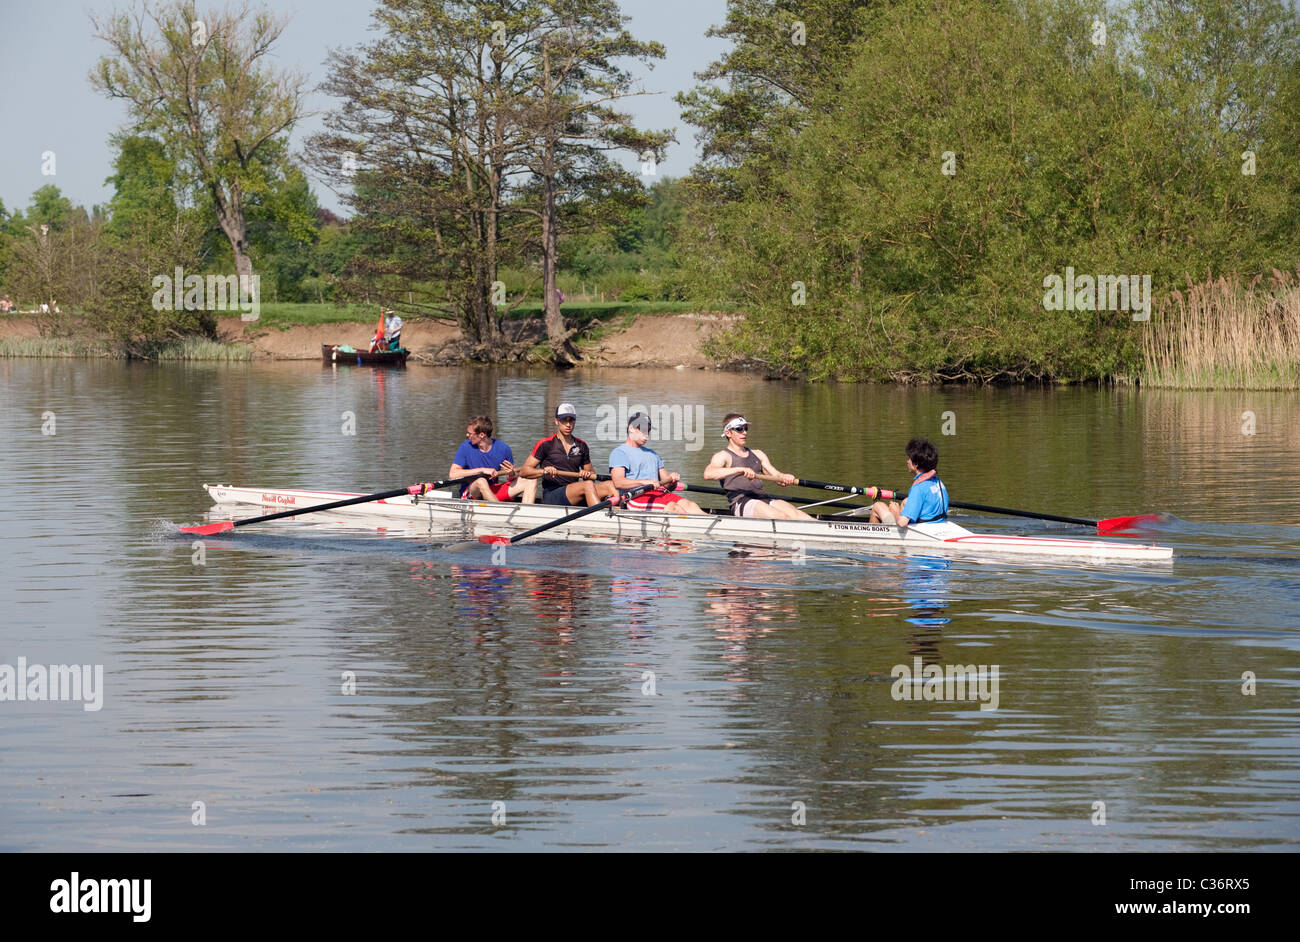 A ladies coxed four rowing on the River Thames at Wallingford Oxfordshire - Stock Image